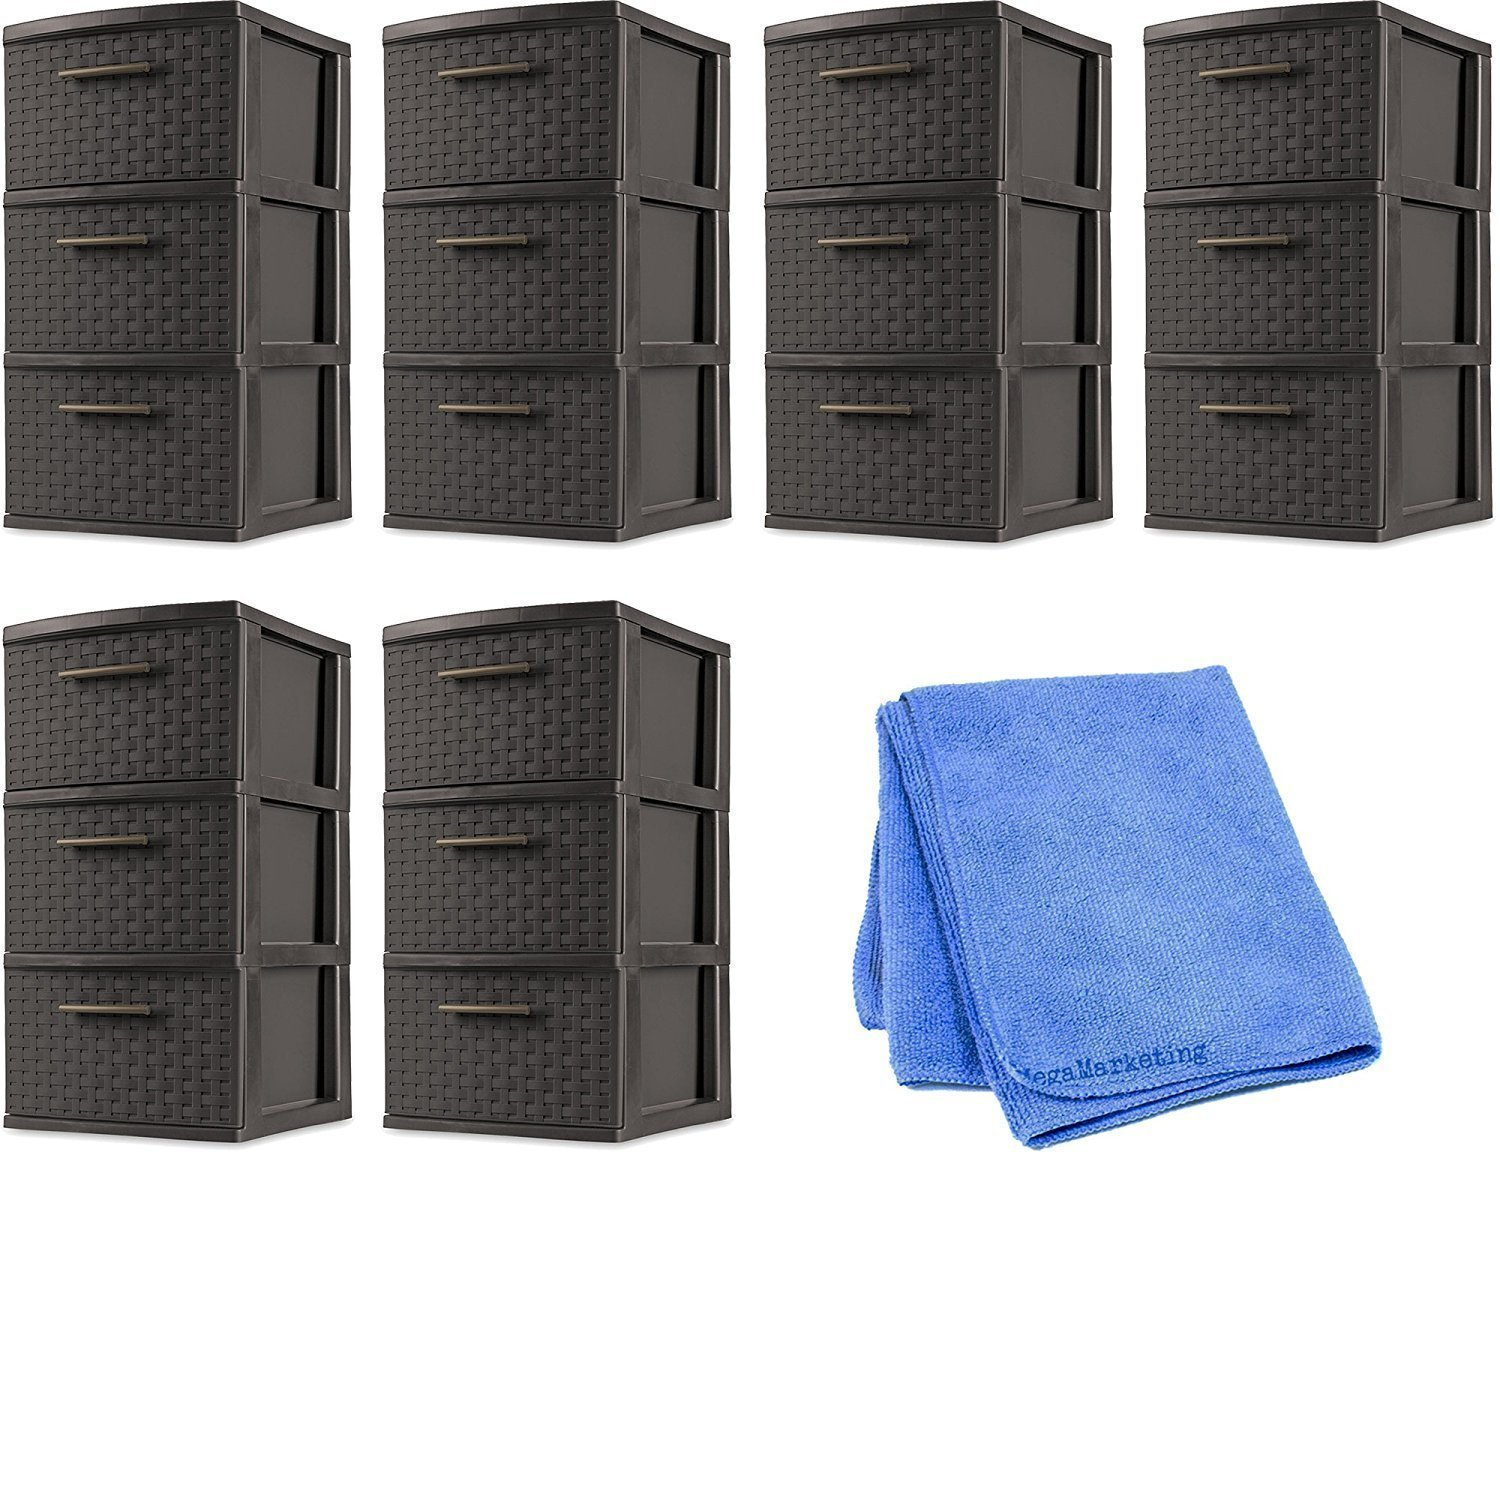 Sterilite 26306P02 Decorative 3-Drawer Storage Weave Tower, Espresso, Set of 6 with Cleaning Cloth